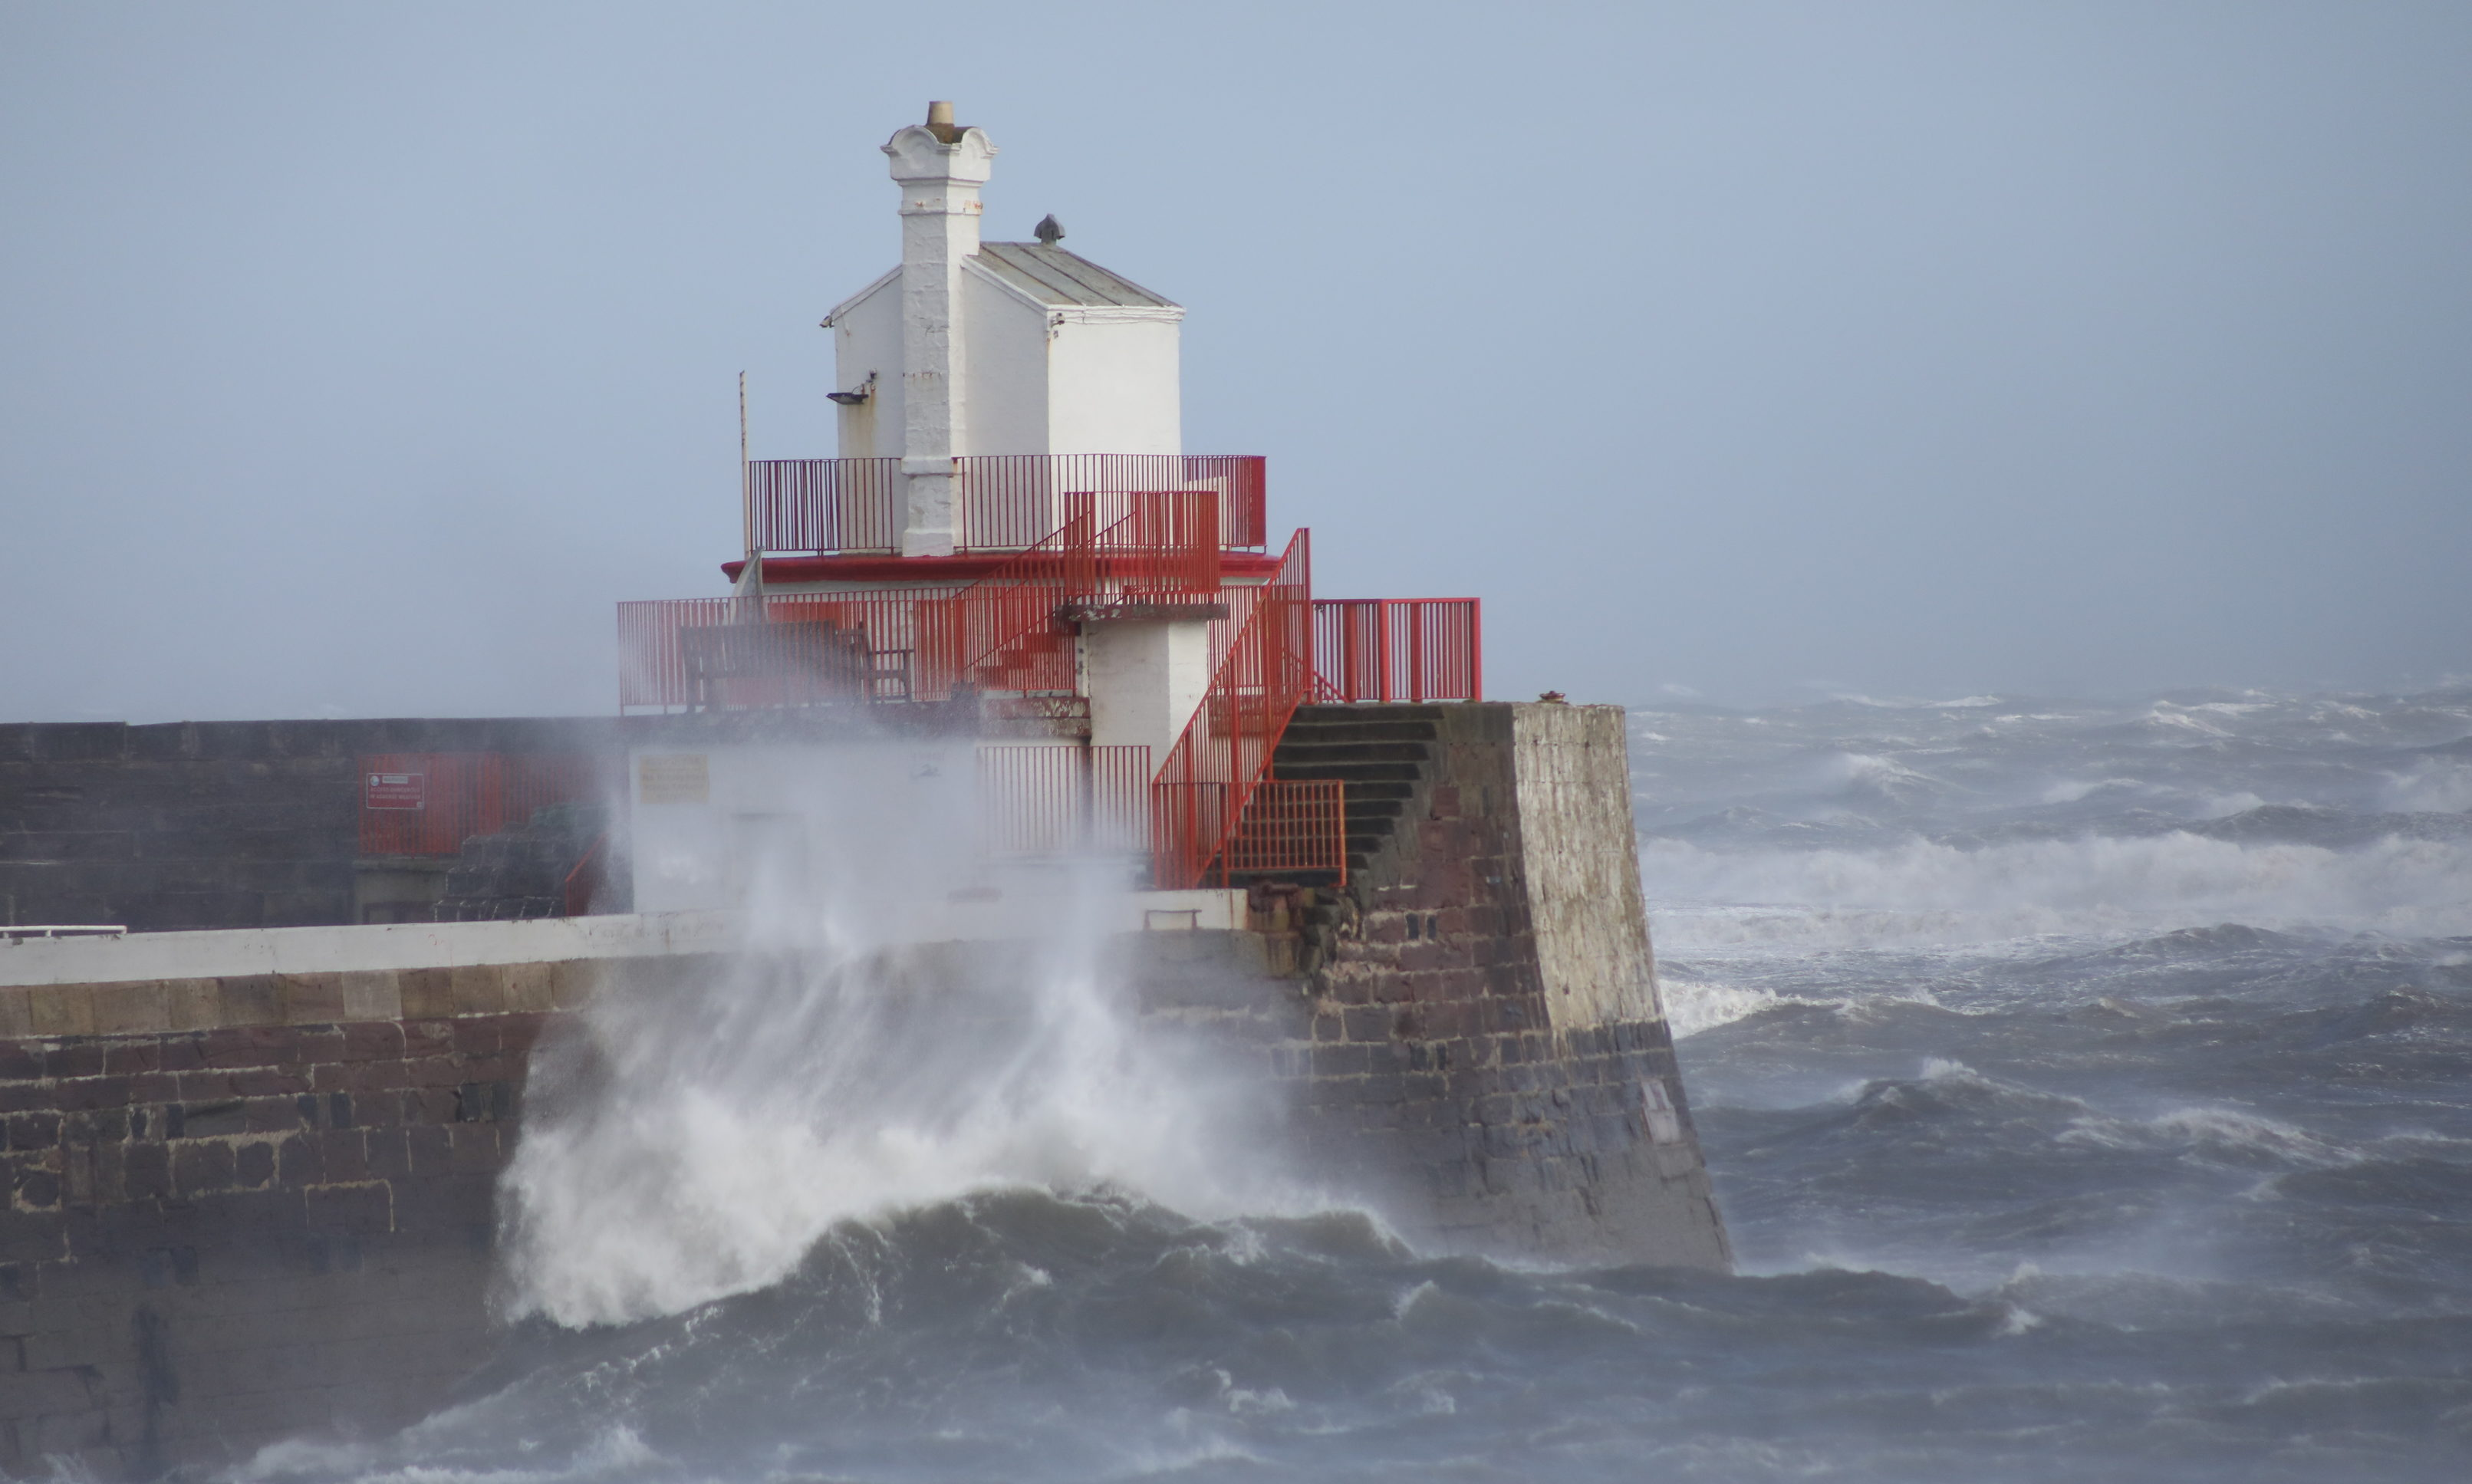 Waves battering the harbour wall at Arbroath.